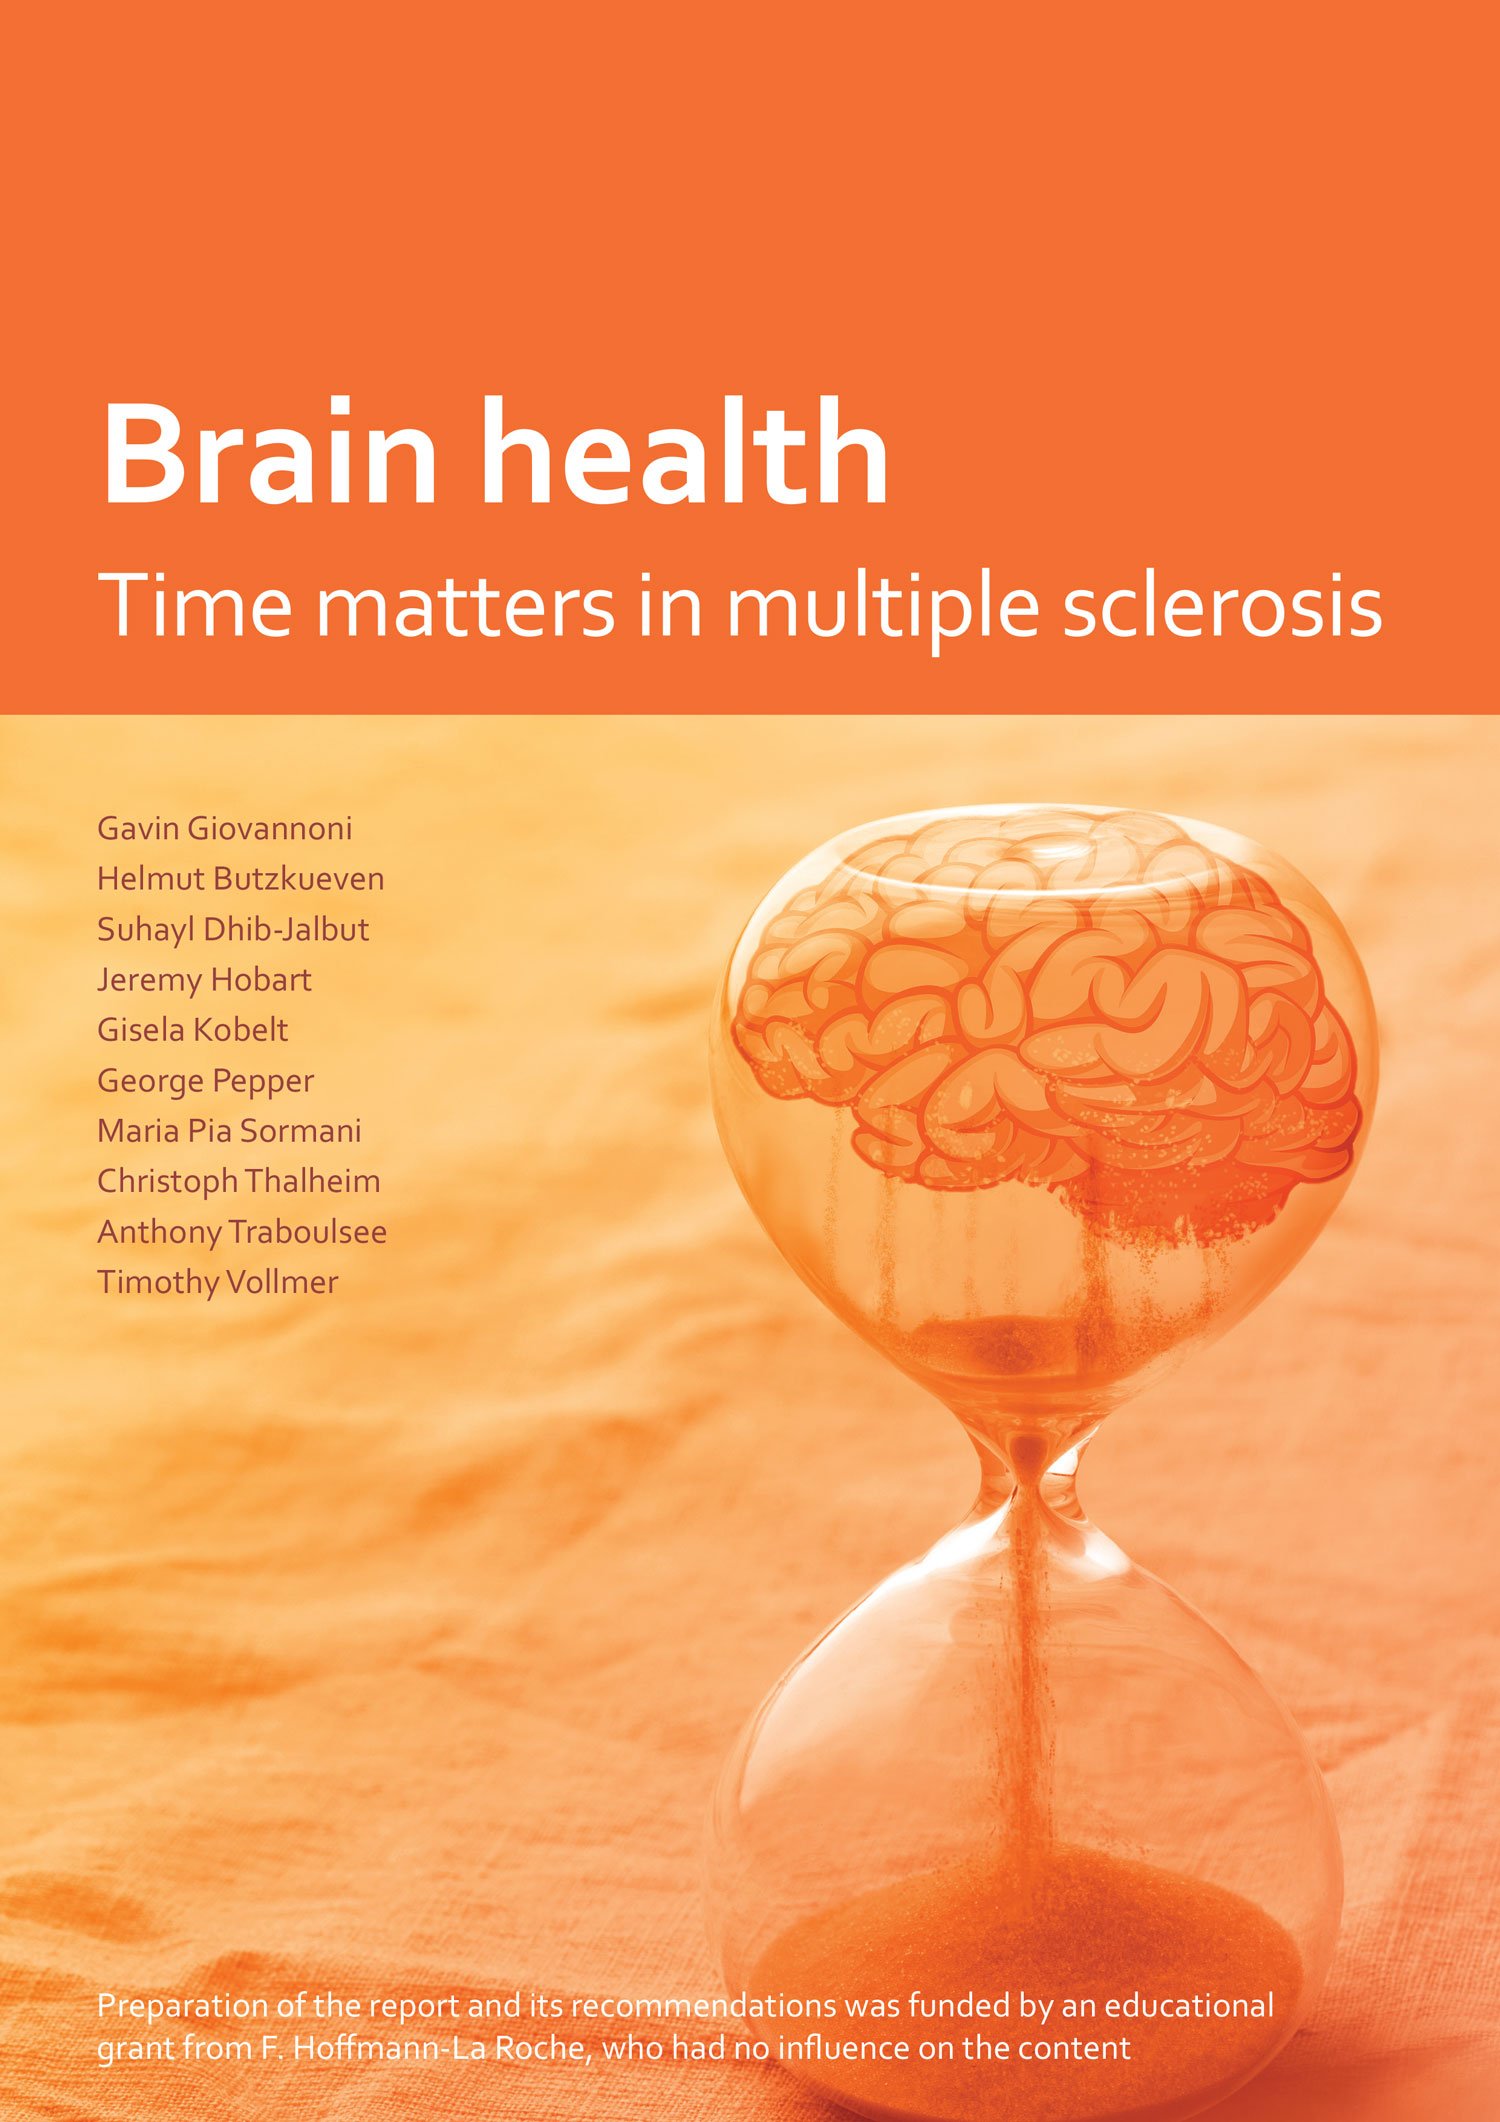 brain-health-time-matters-in-multiple-sclerosis-policy-report-1